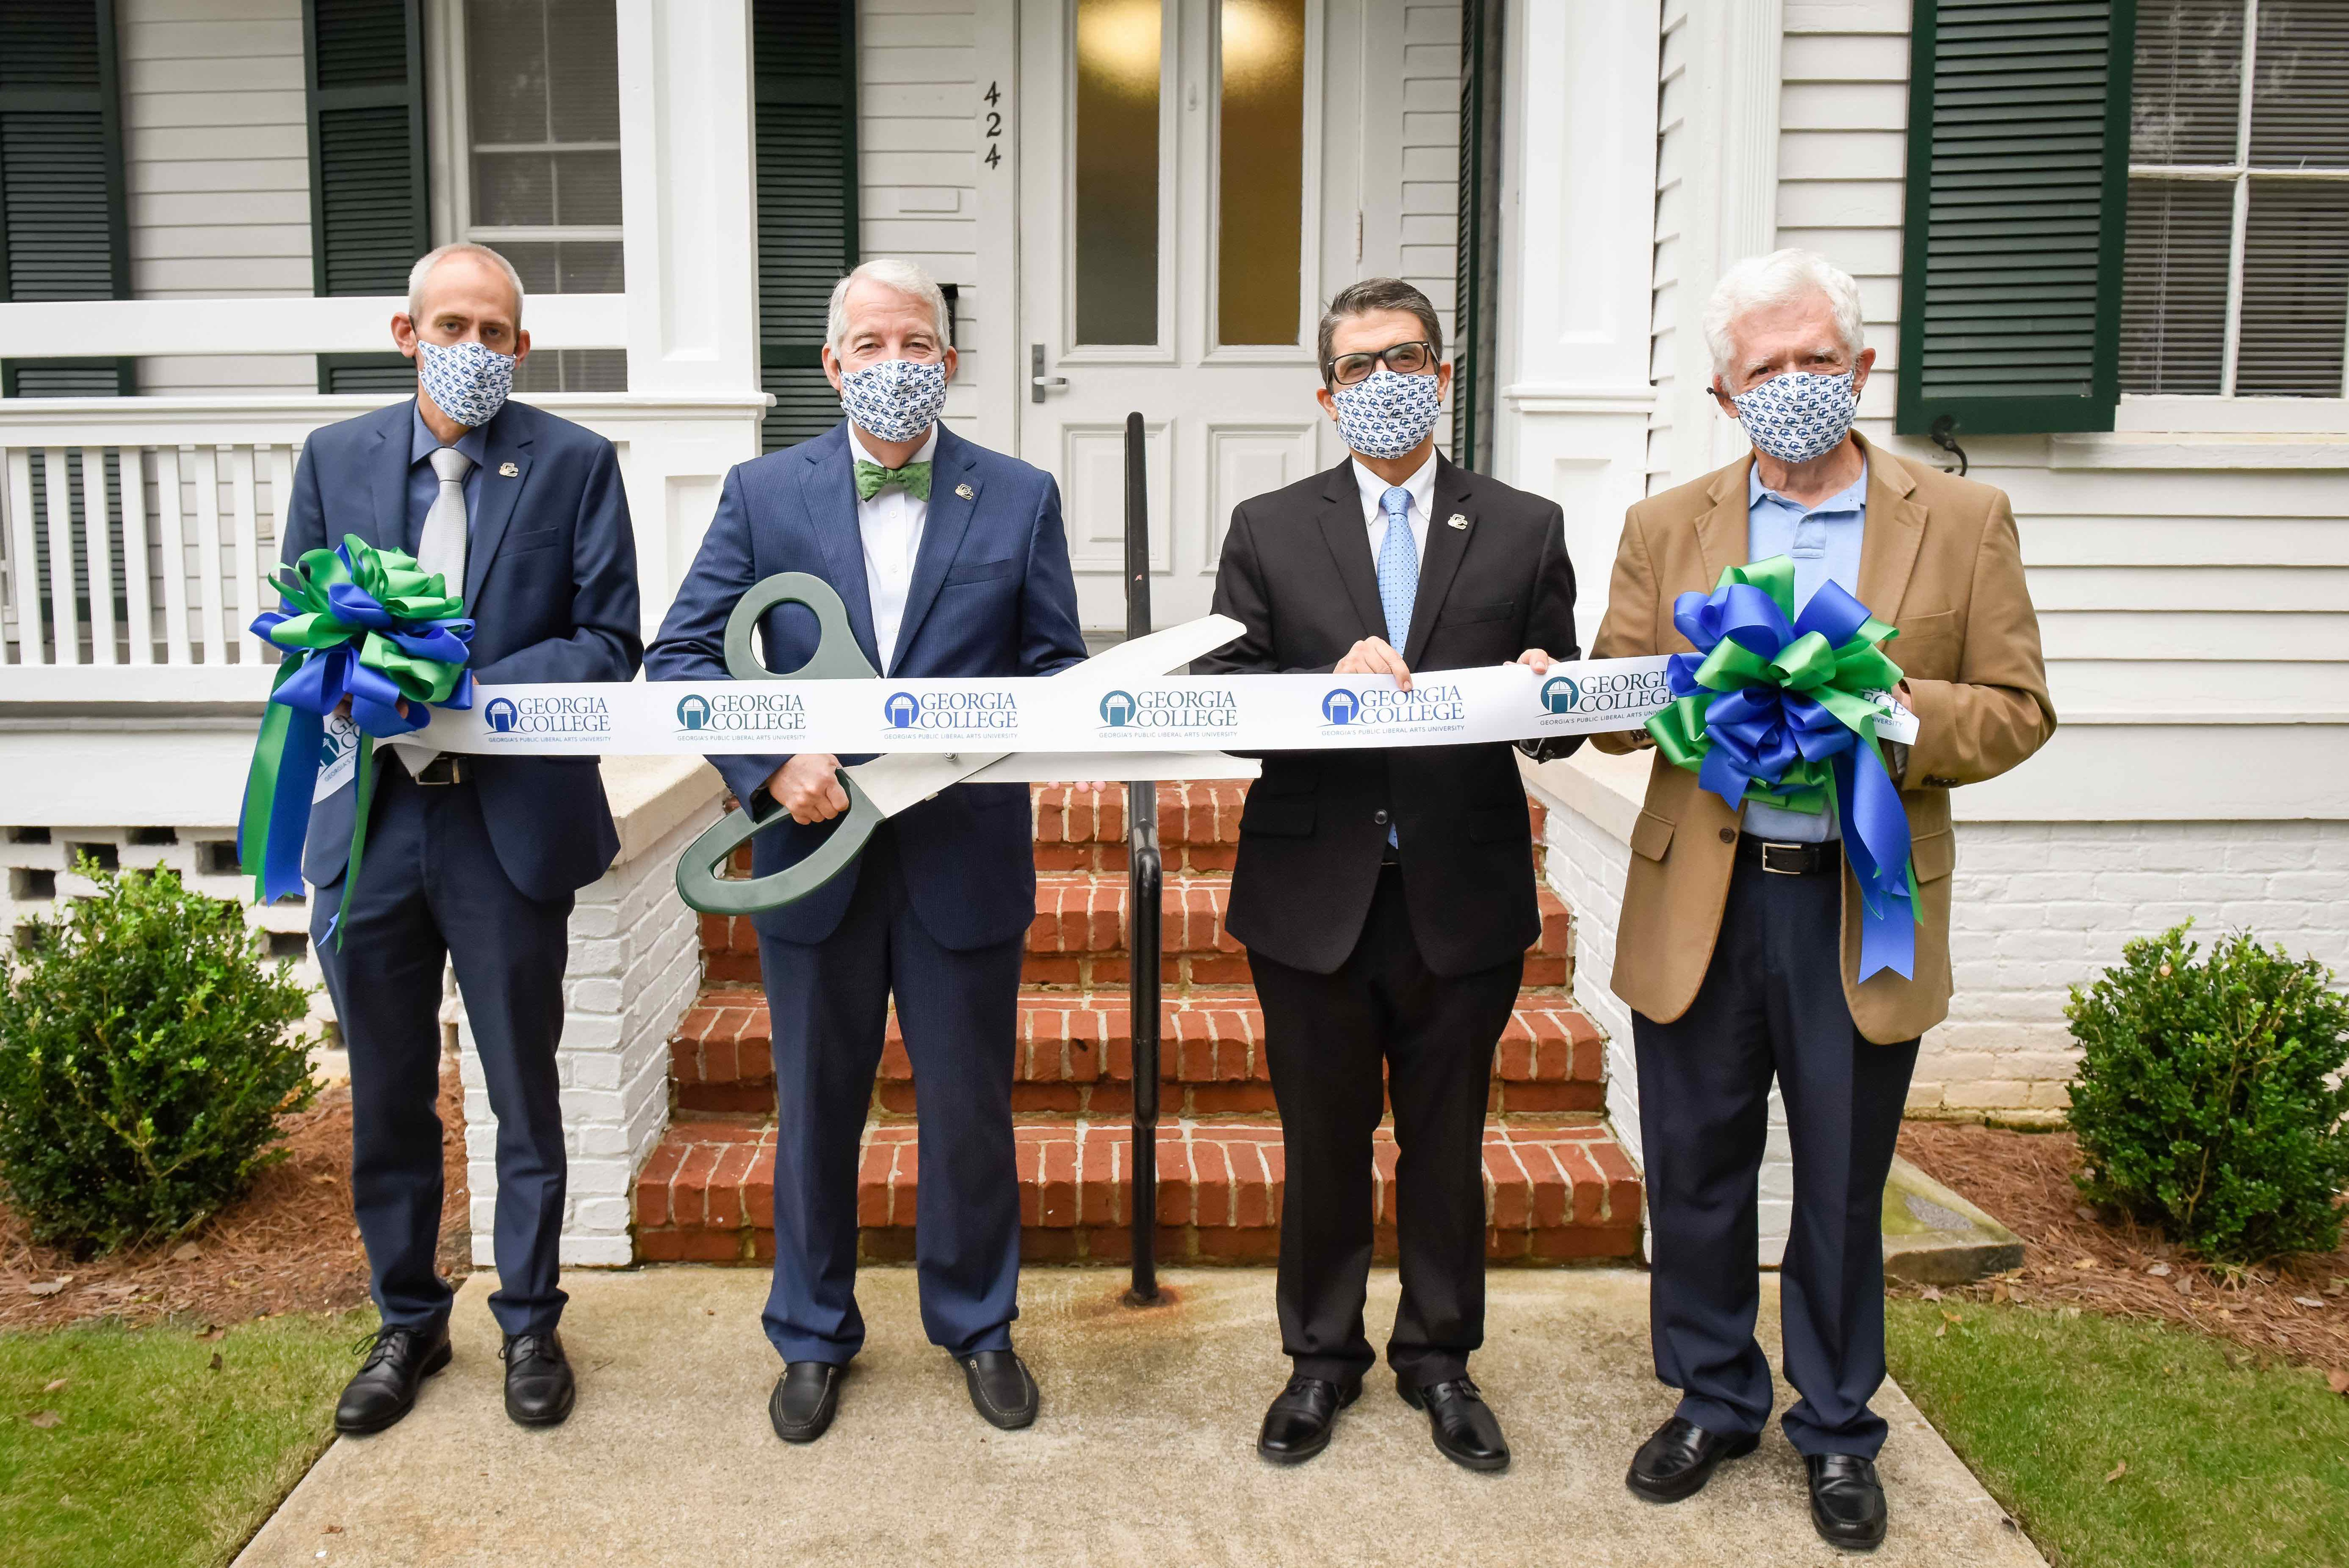 Ribbon cutting ceremony in October with Honors College Dean Brian Newsome, GC President Steve Dorman, Provost Costas Spirou and Professor Emeritus Ken Saladin.